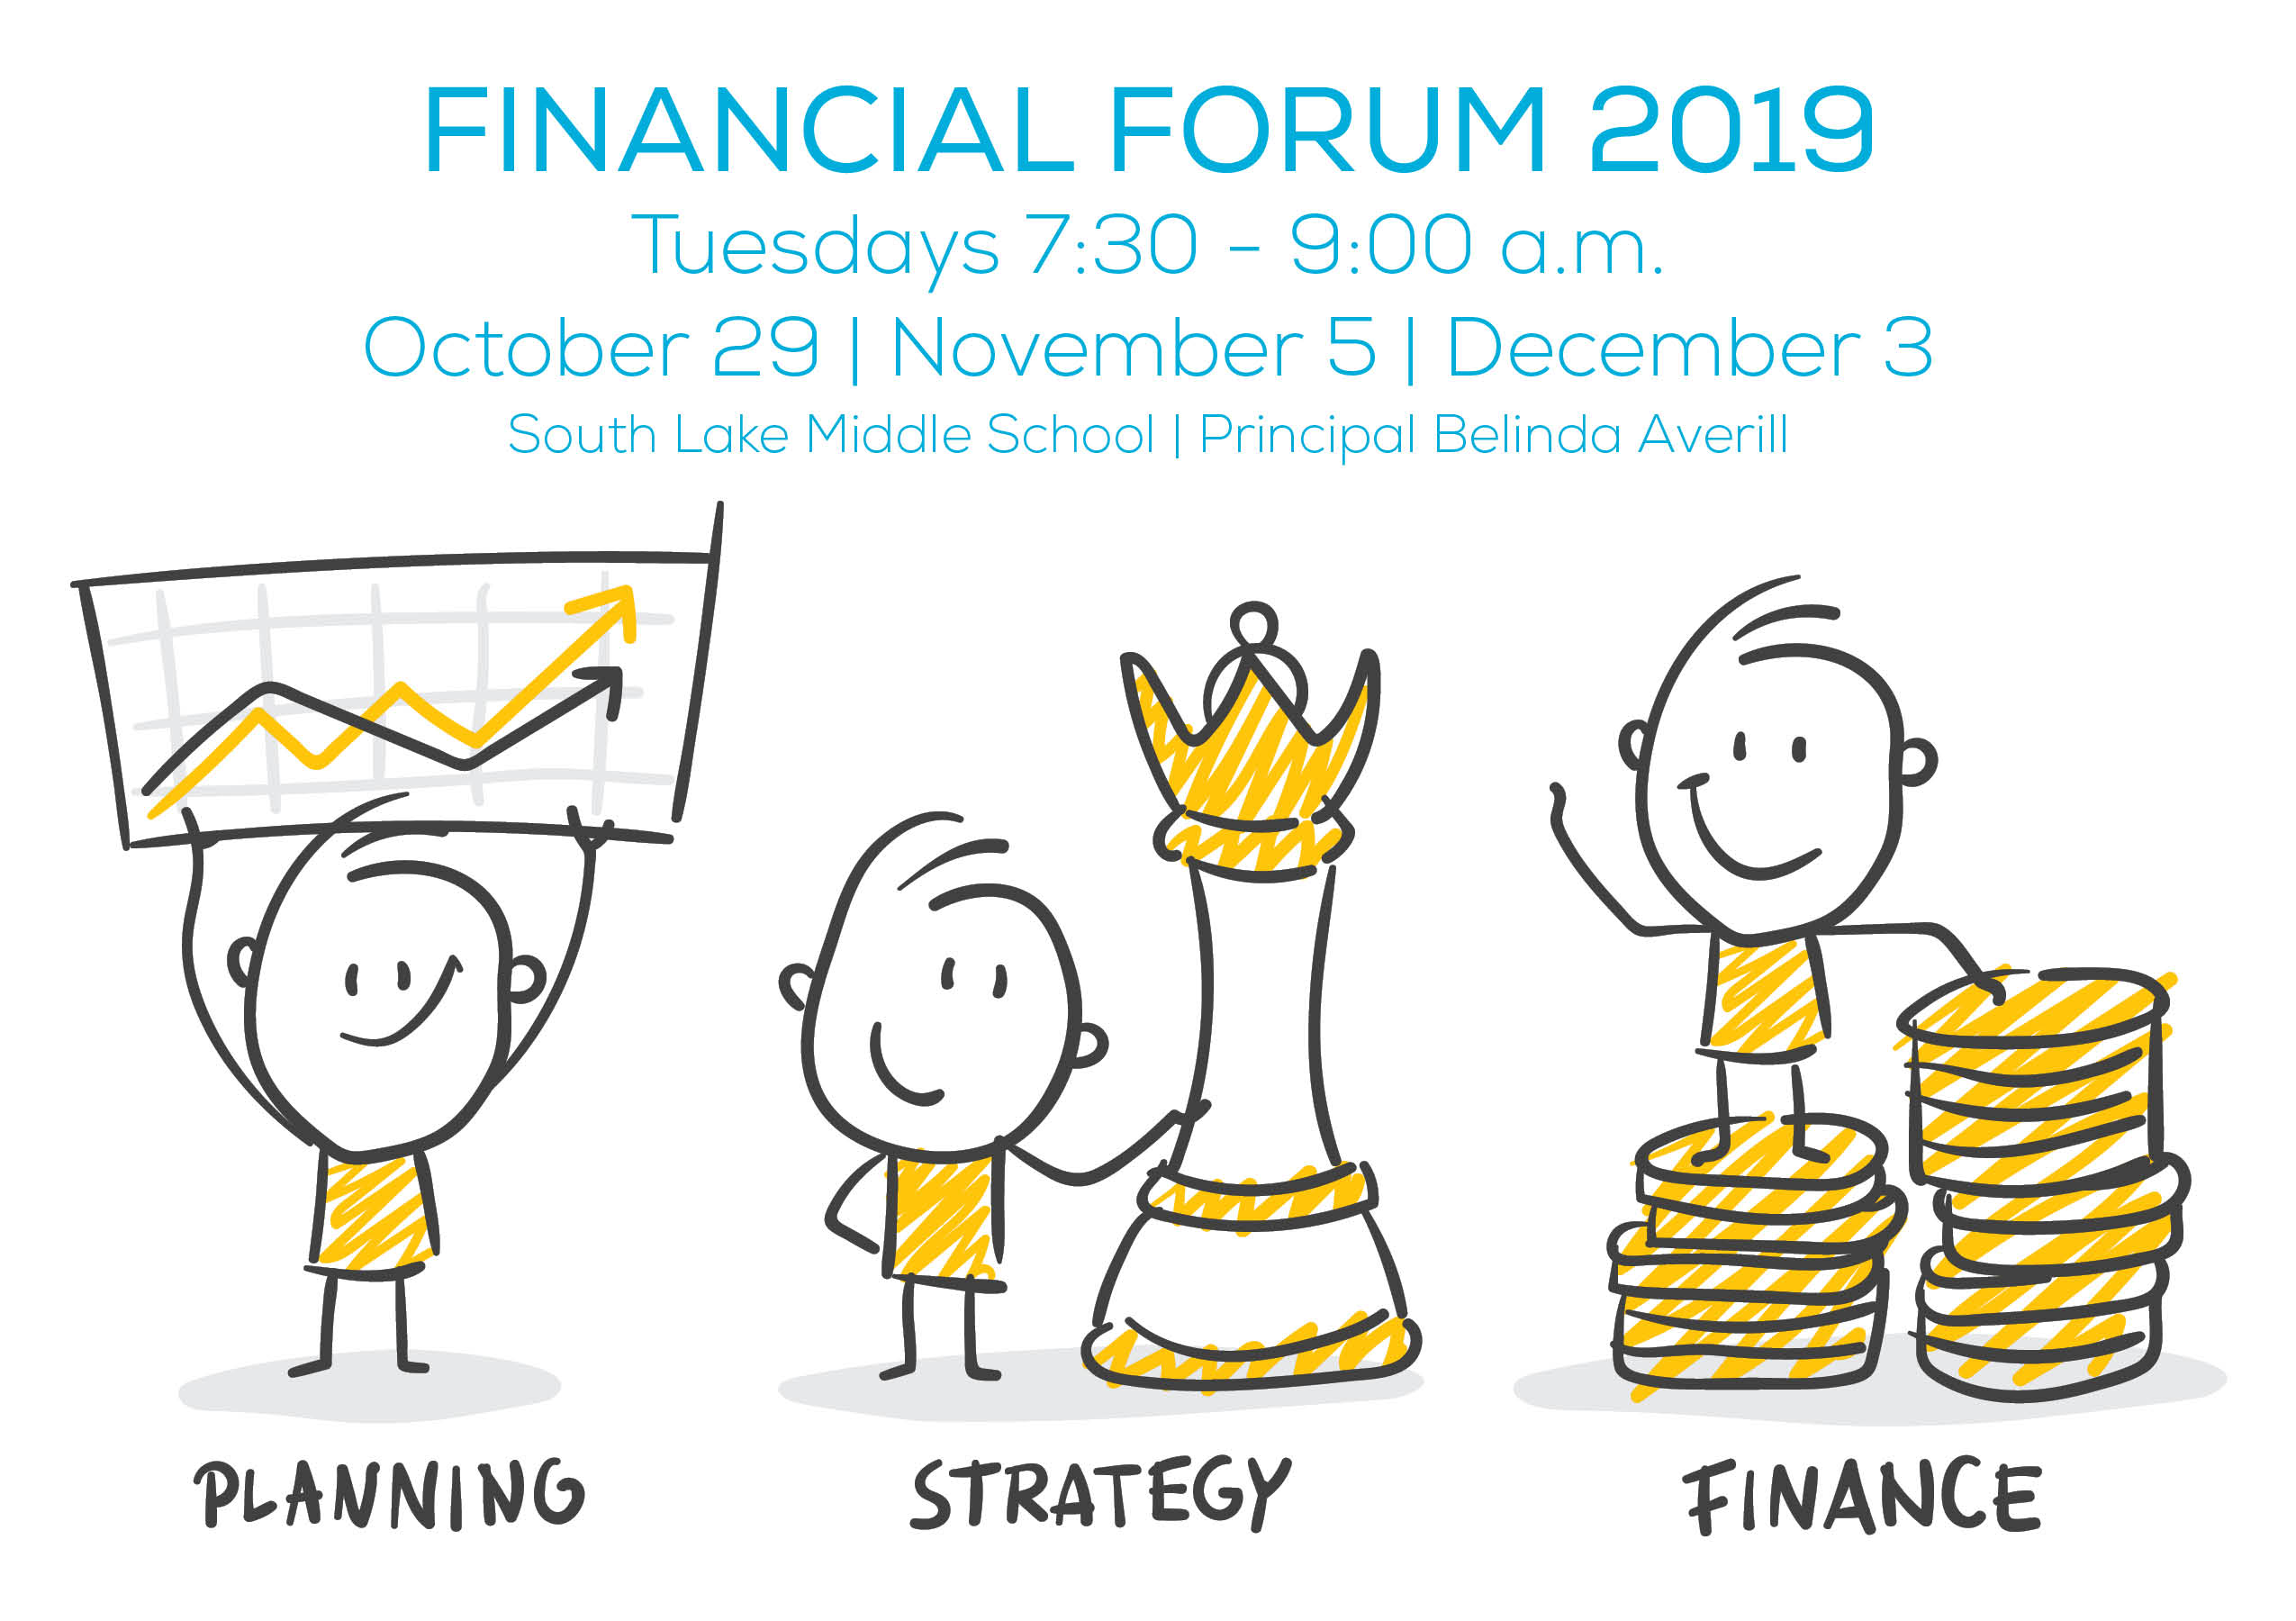 Financial Forum 2019